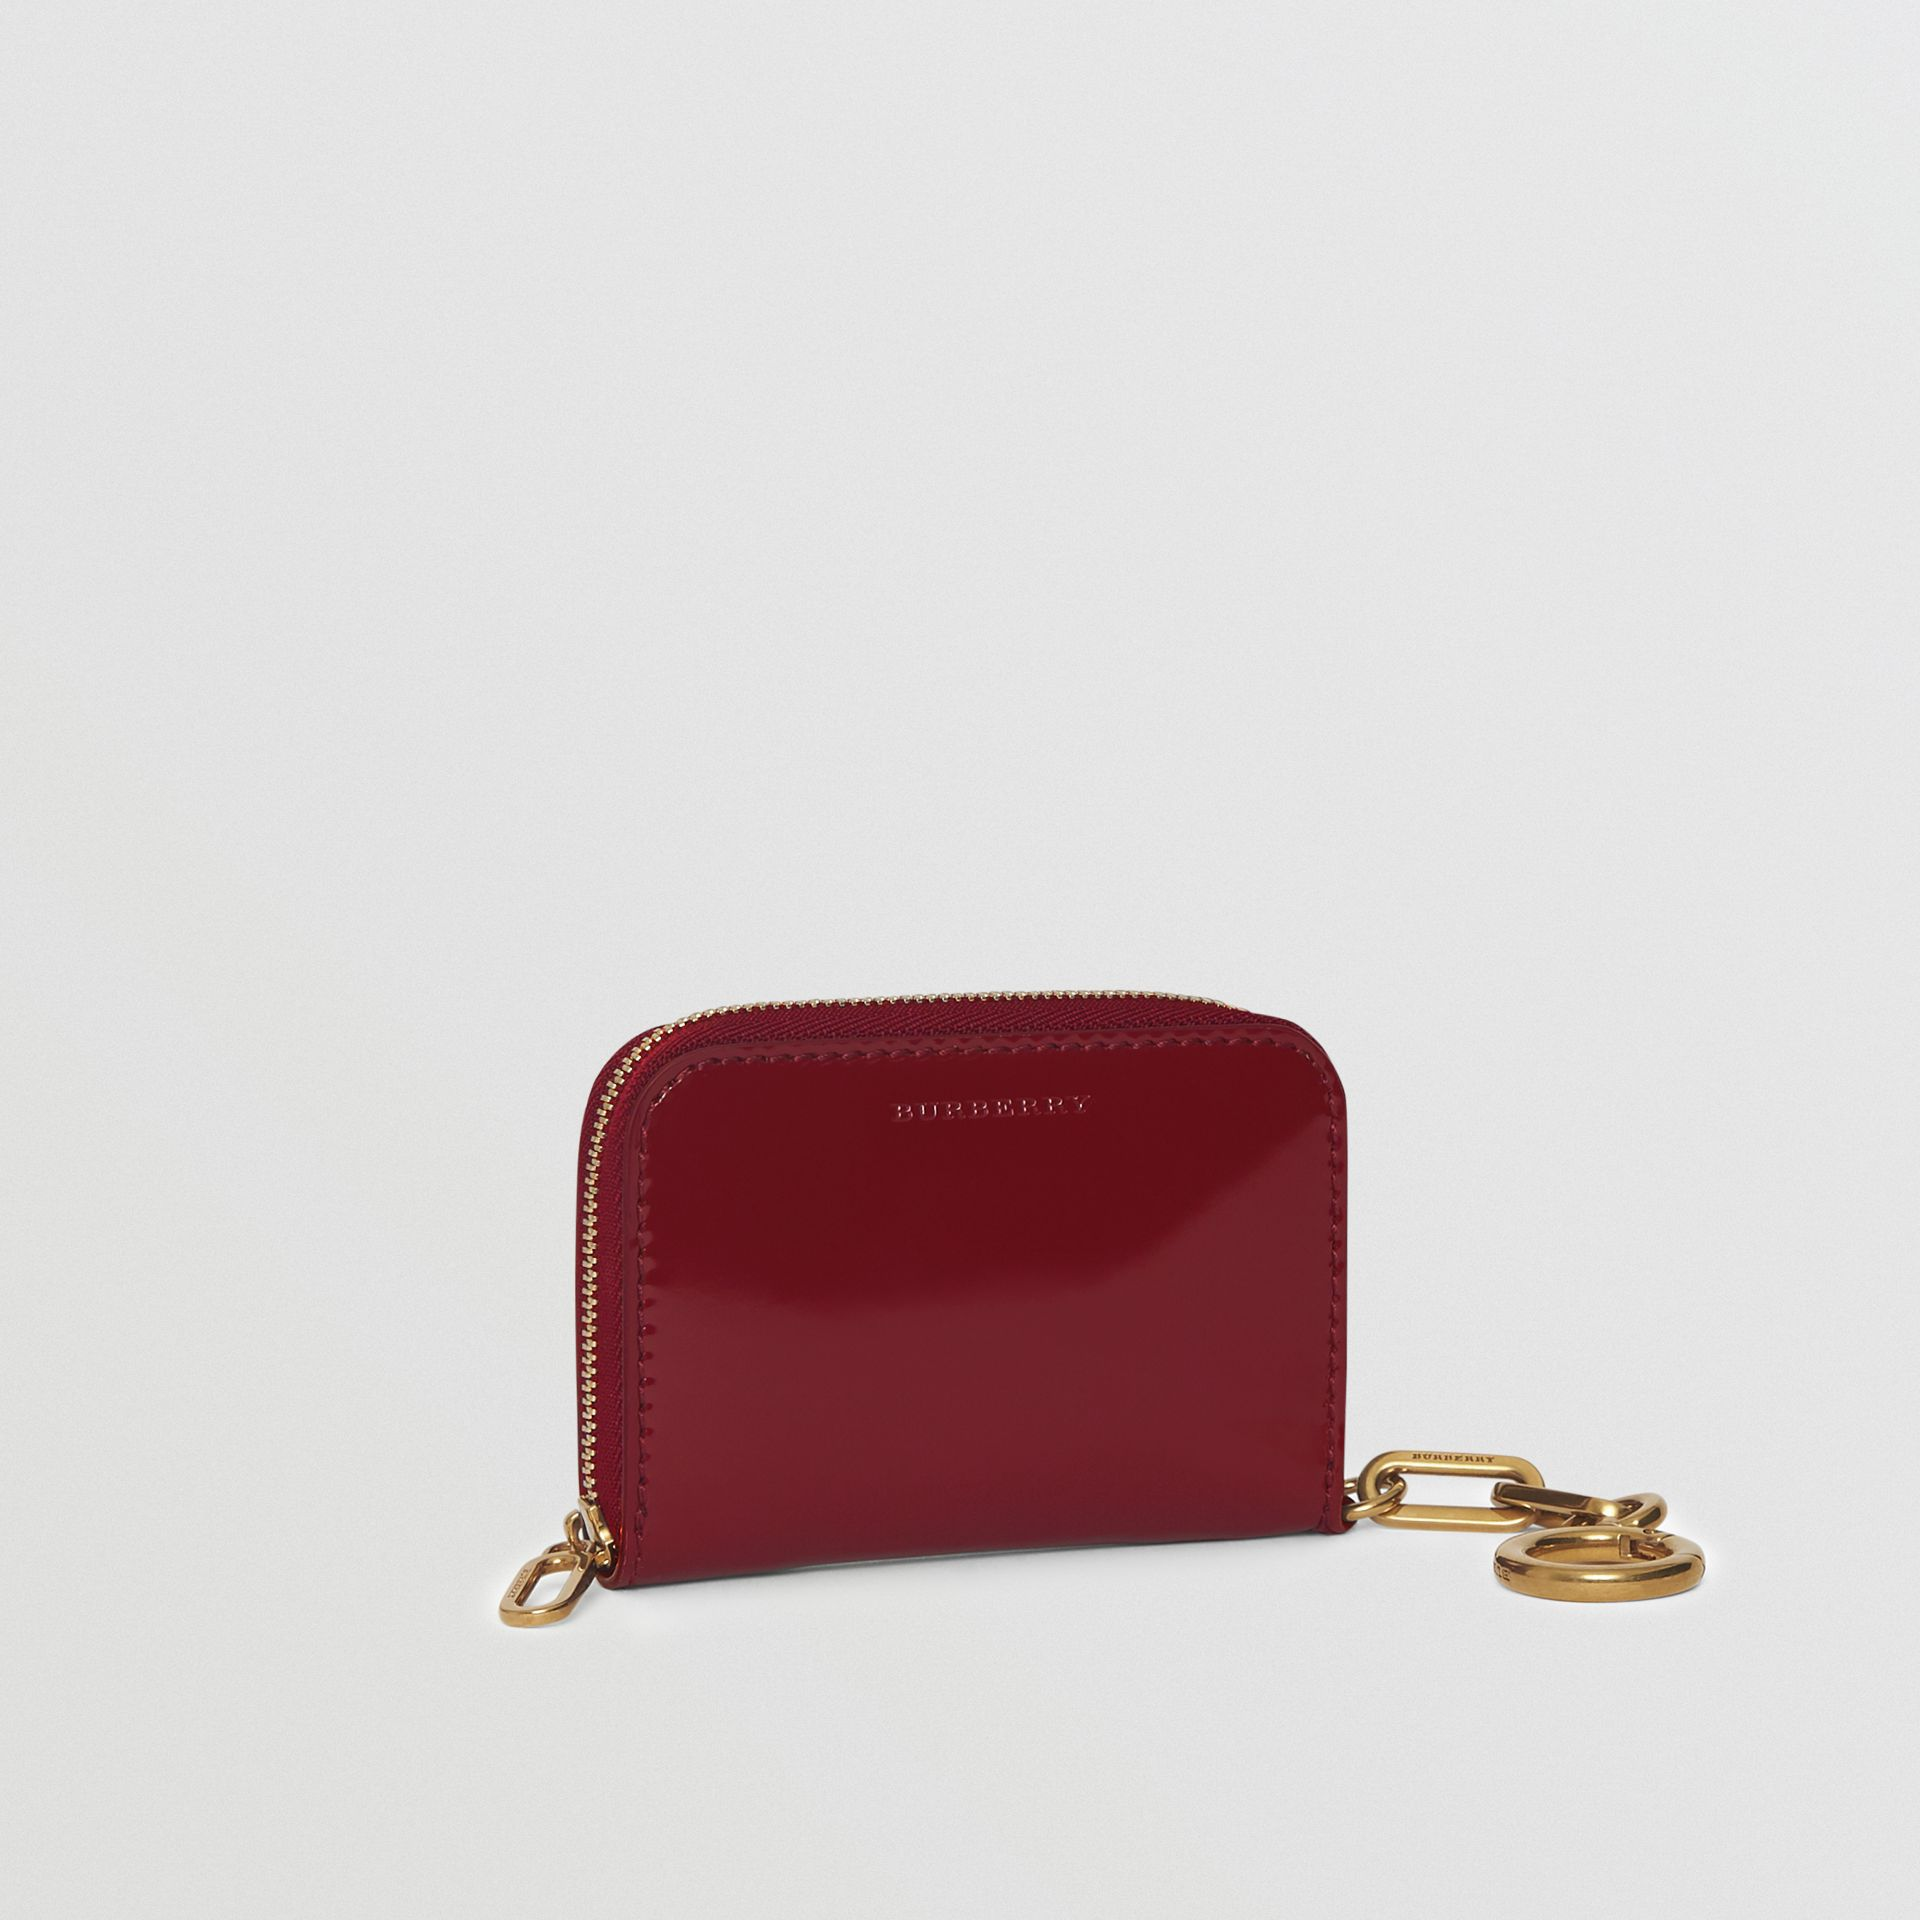 Link Detail Patent Leather Ziparound Wallet in Crimson - Women | Burberry Canada - gallery image 4